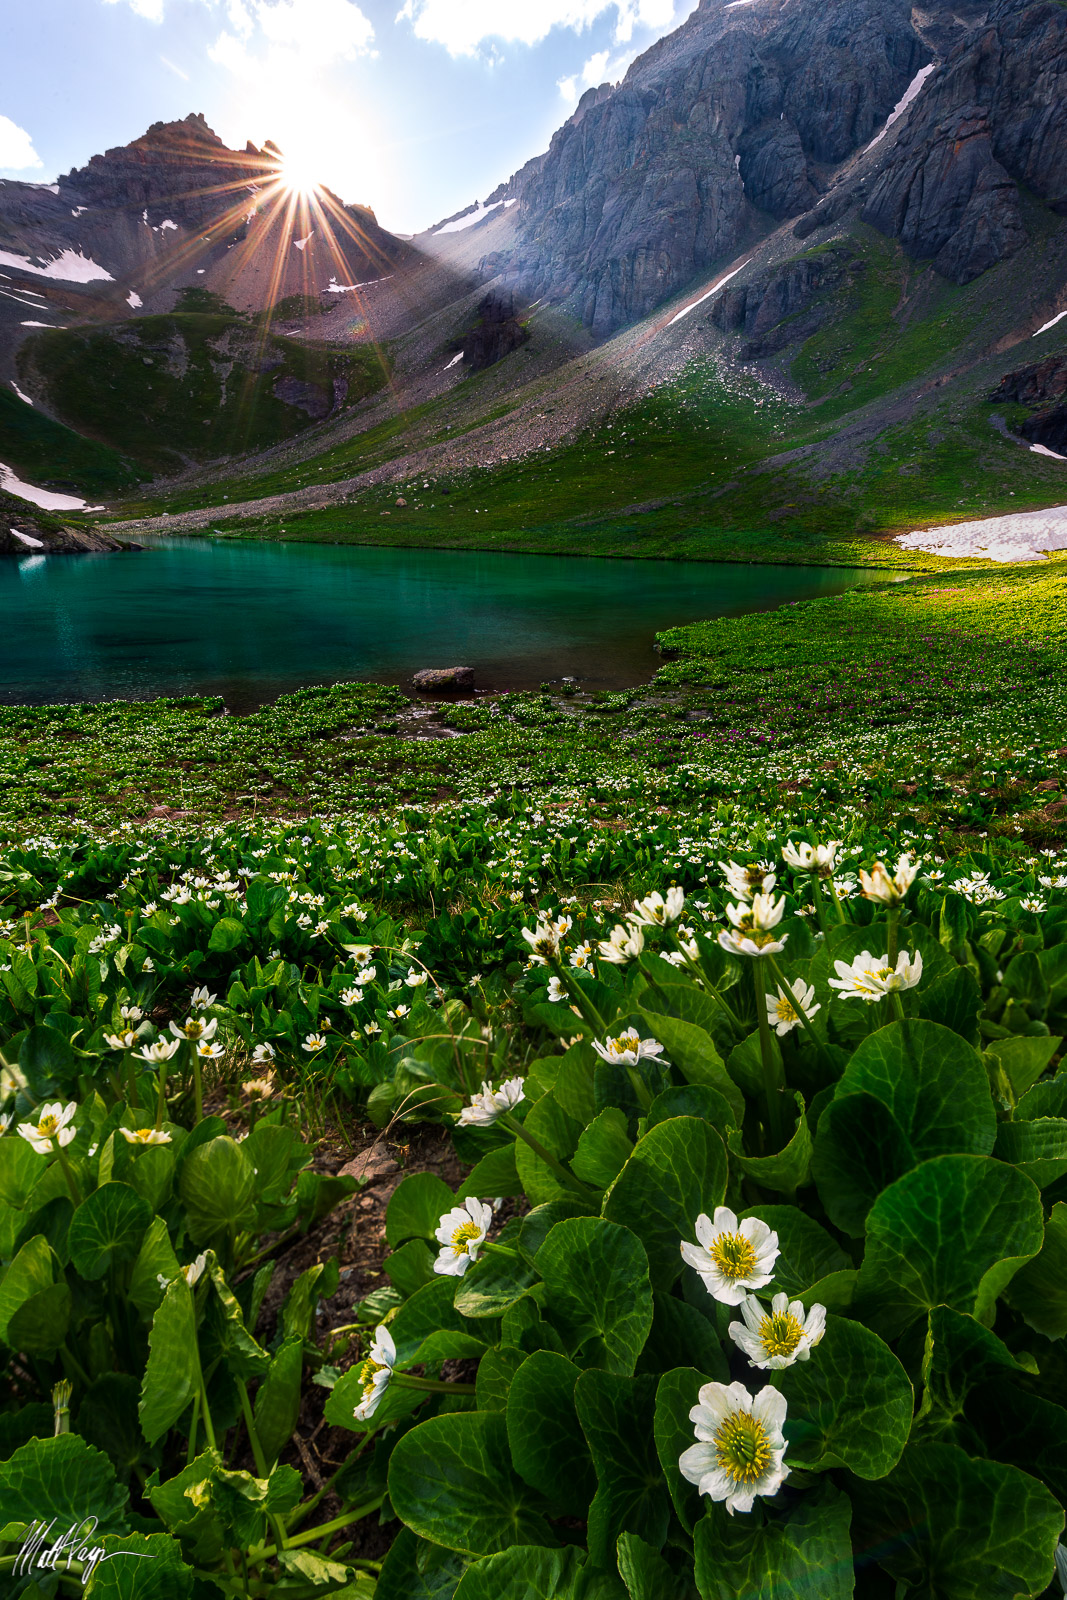 13er, Colorado, wildflowers, Island Lake, Marsh Marigold, Nature, San Juan Mountains, Silverton, Sunbeams, Sunset, Sunstar, Water, Wildflowers, Landscape Photography, photo